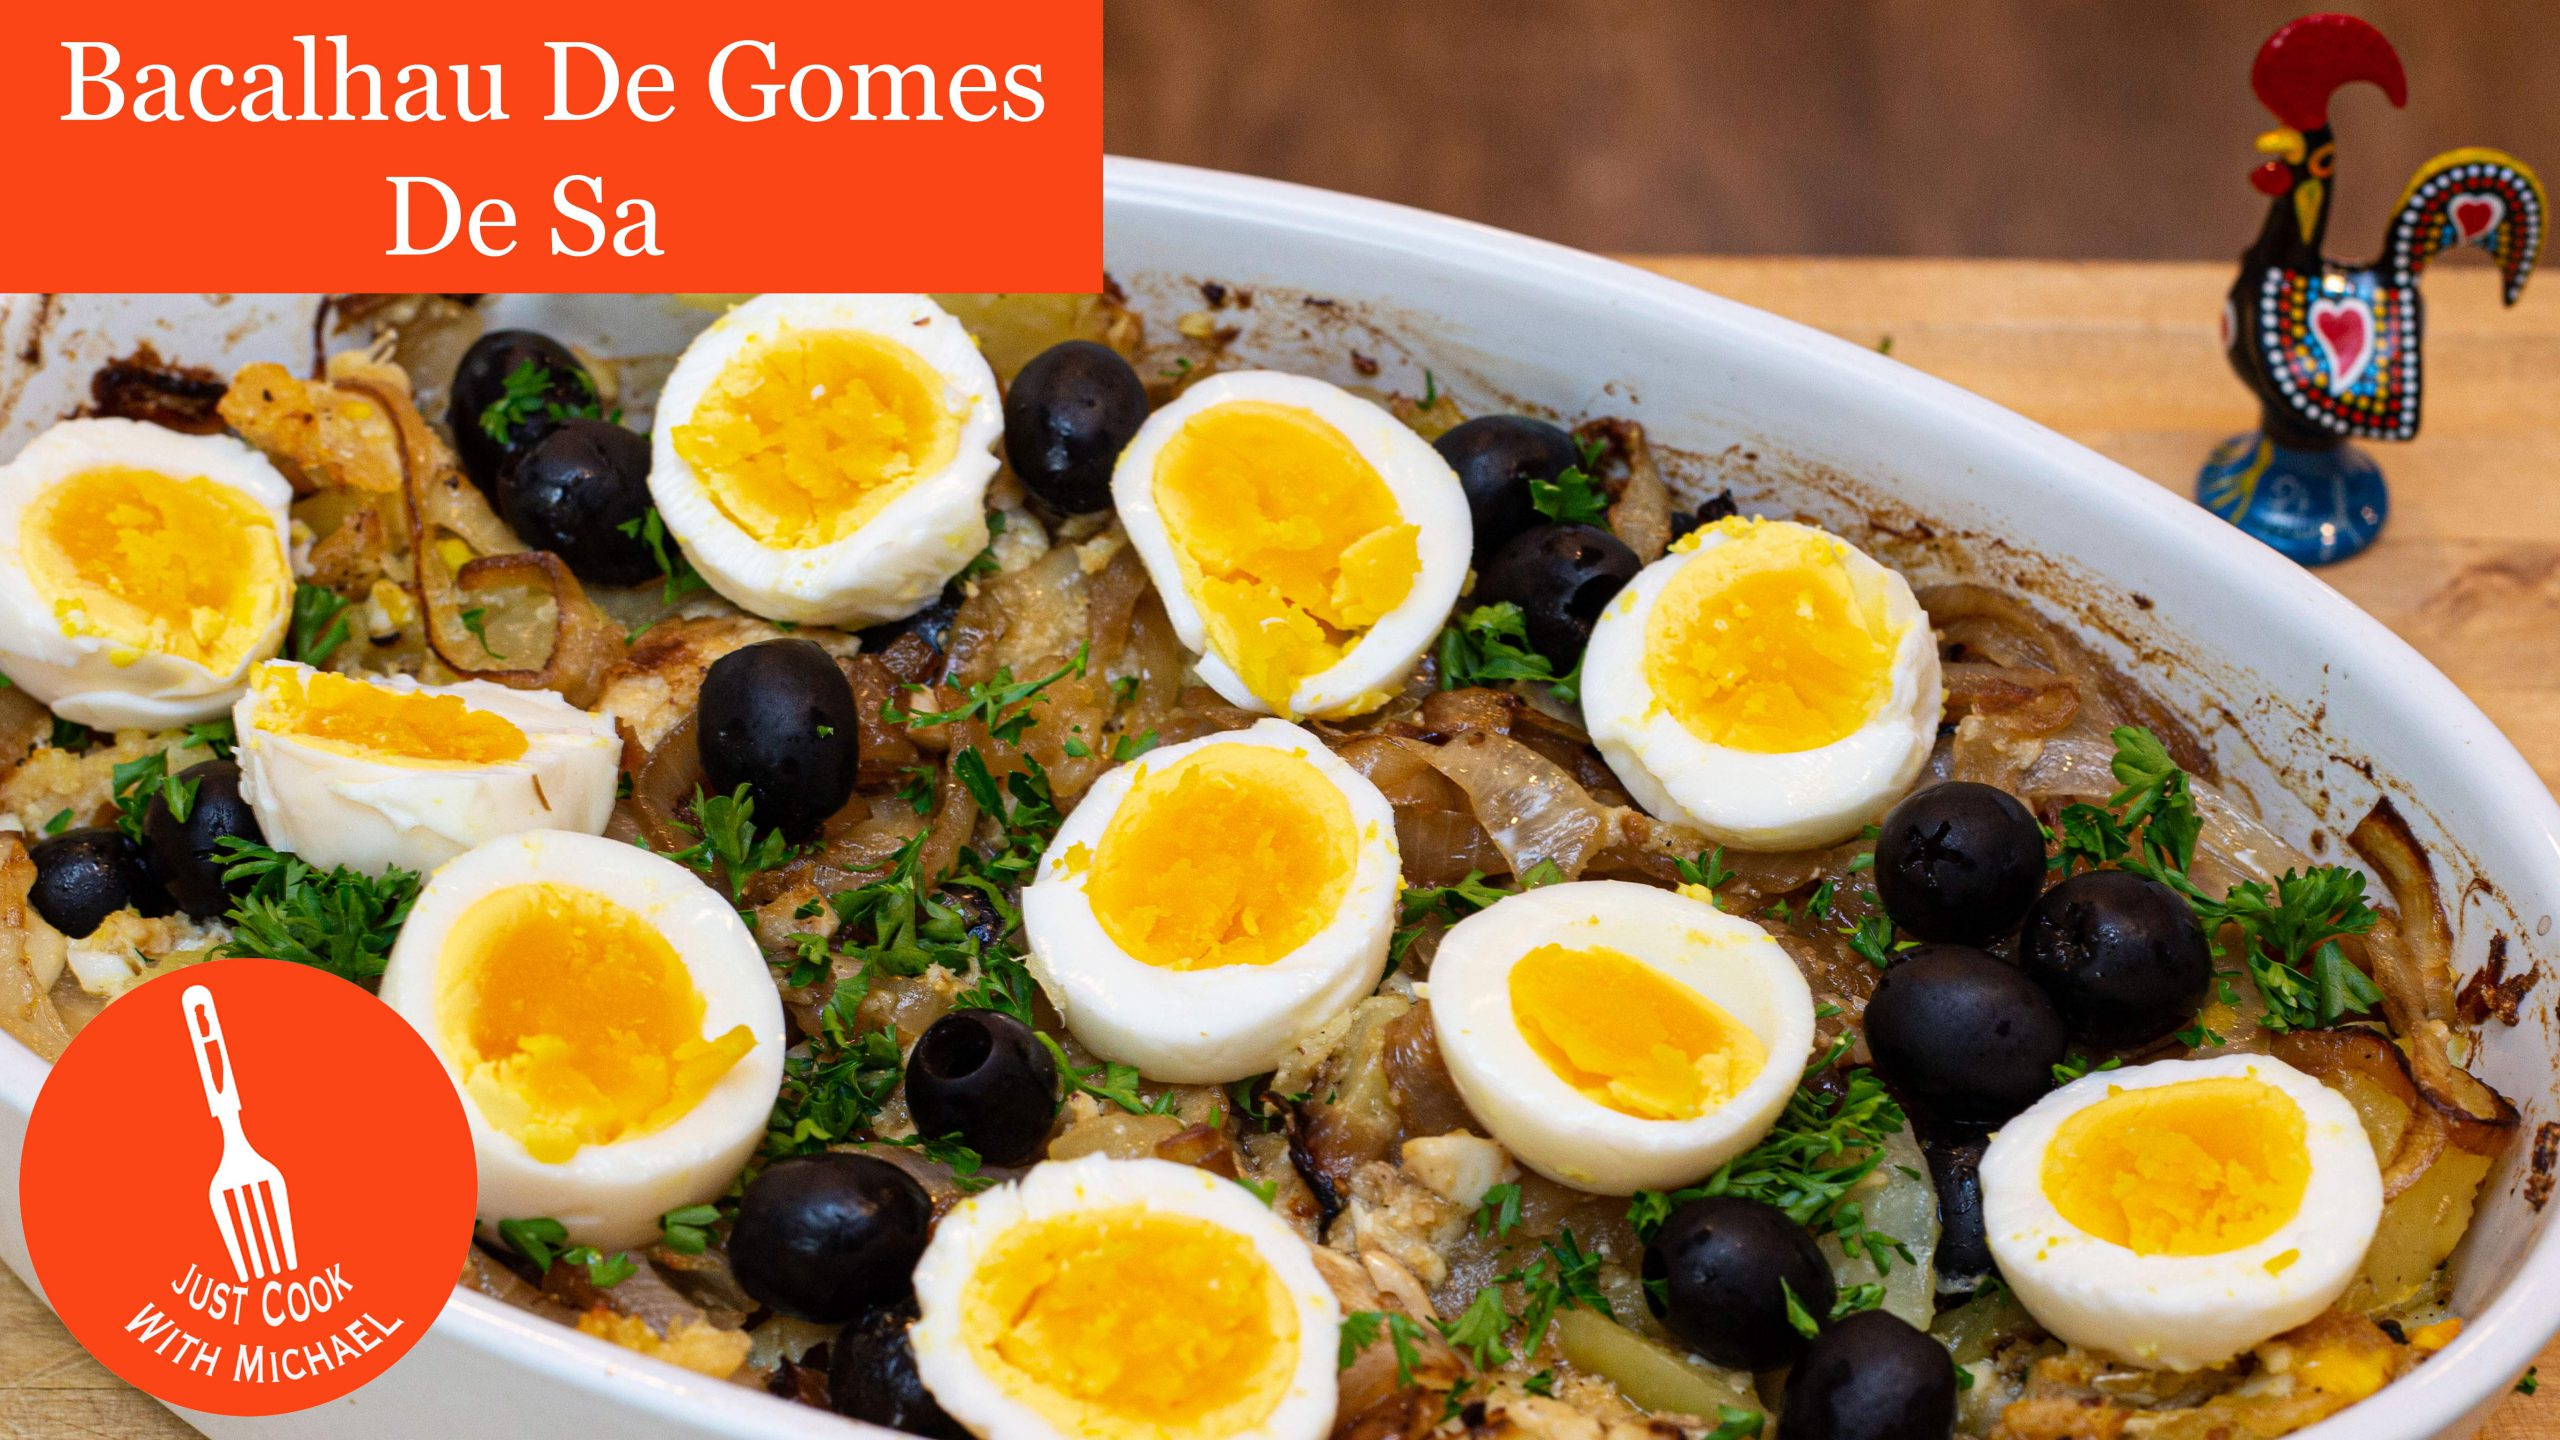 Portuguese Bacalhau a Gomes de Sa, Salt Cod Casserole, with hard boiled eggs and black olives on top, in white casserole dish